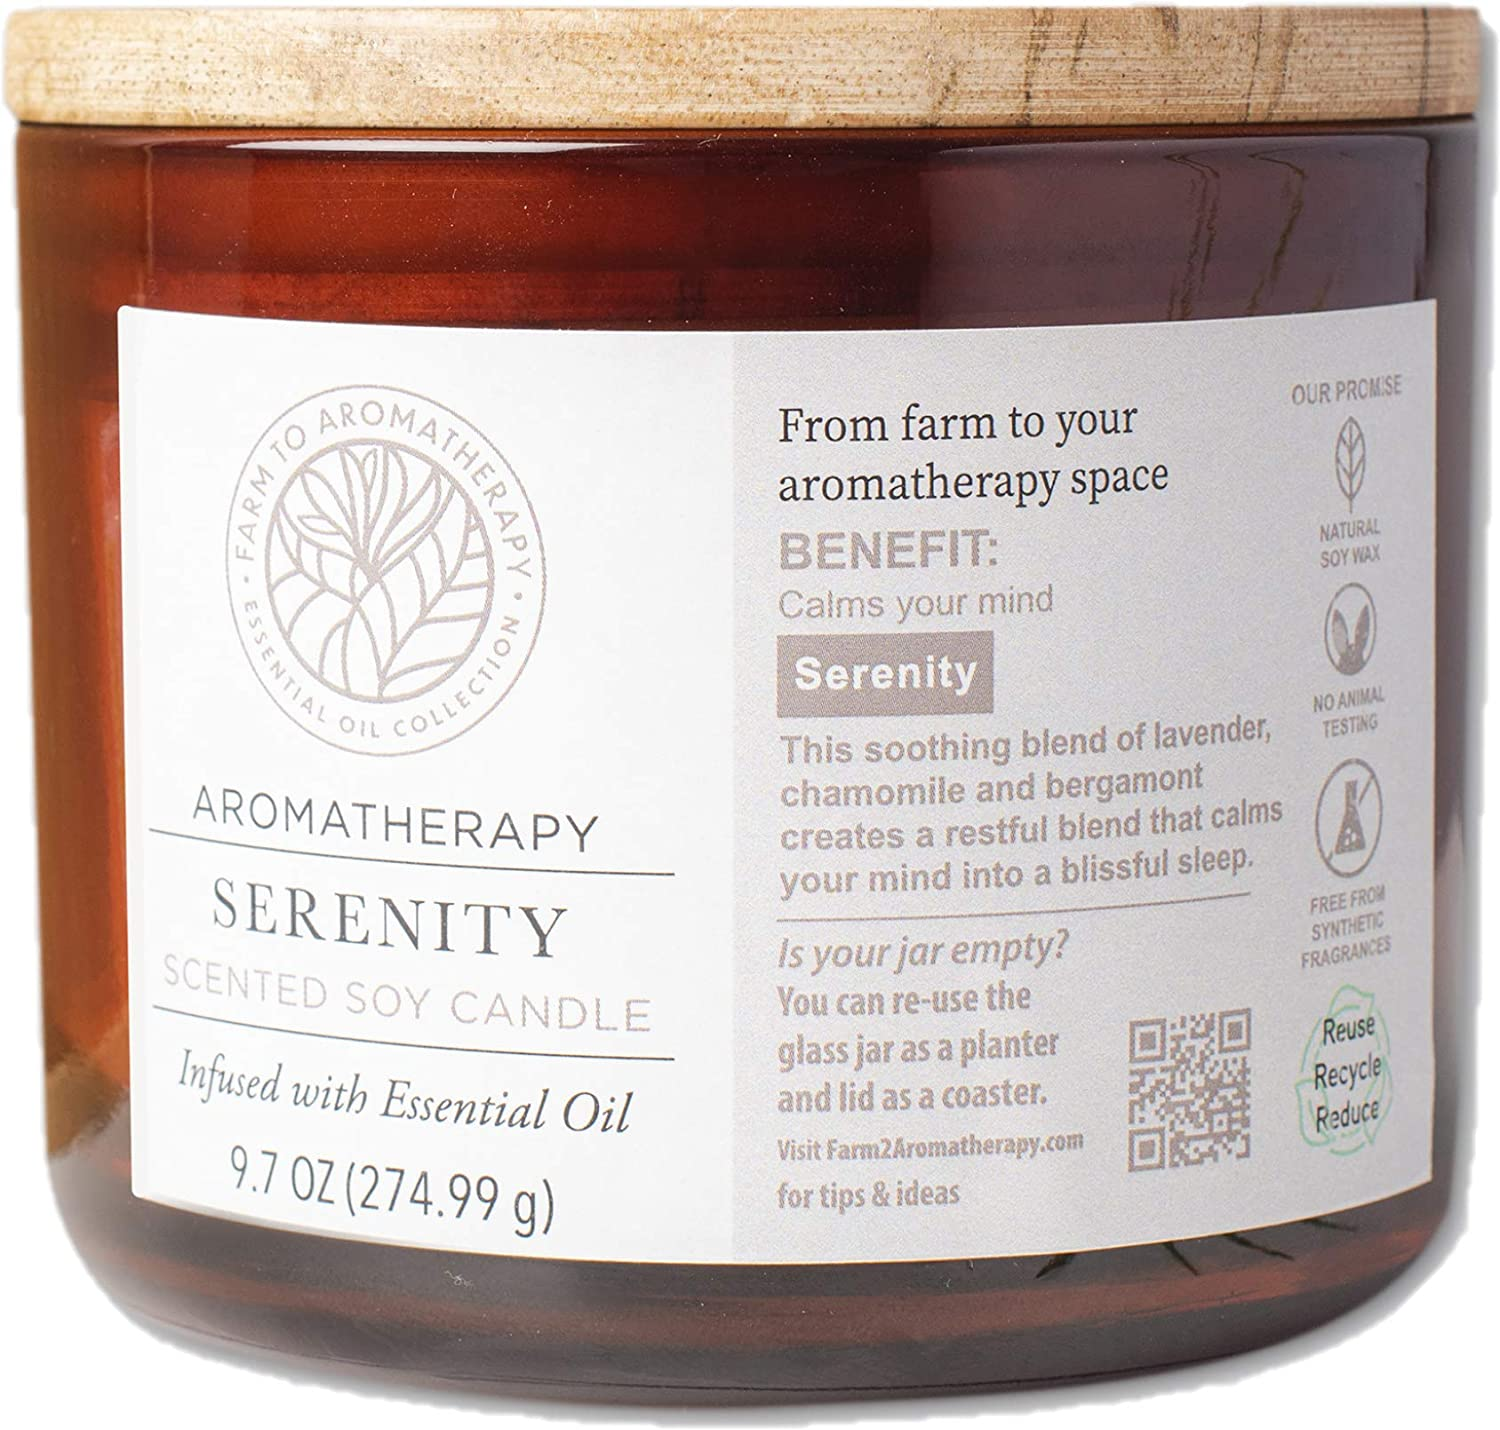 Farm to Aromatherapy 2-Wick Candle with Wooden Lid, Serenity: Clean & Pure, Long Burning, Stress Relief, Promotes Wellness, Calming & Peace with Therapuetic Qualities, 9.7 Oz.